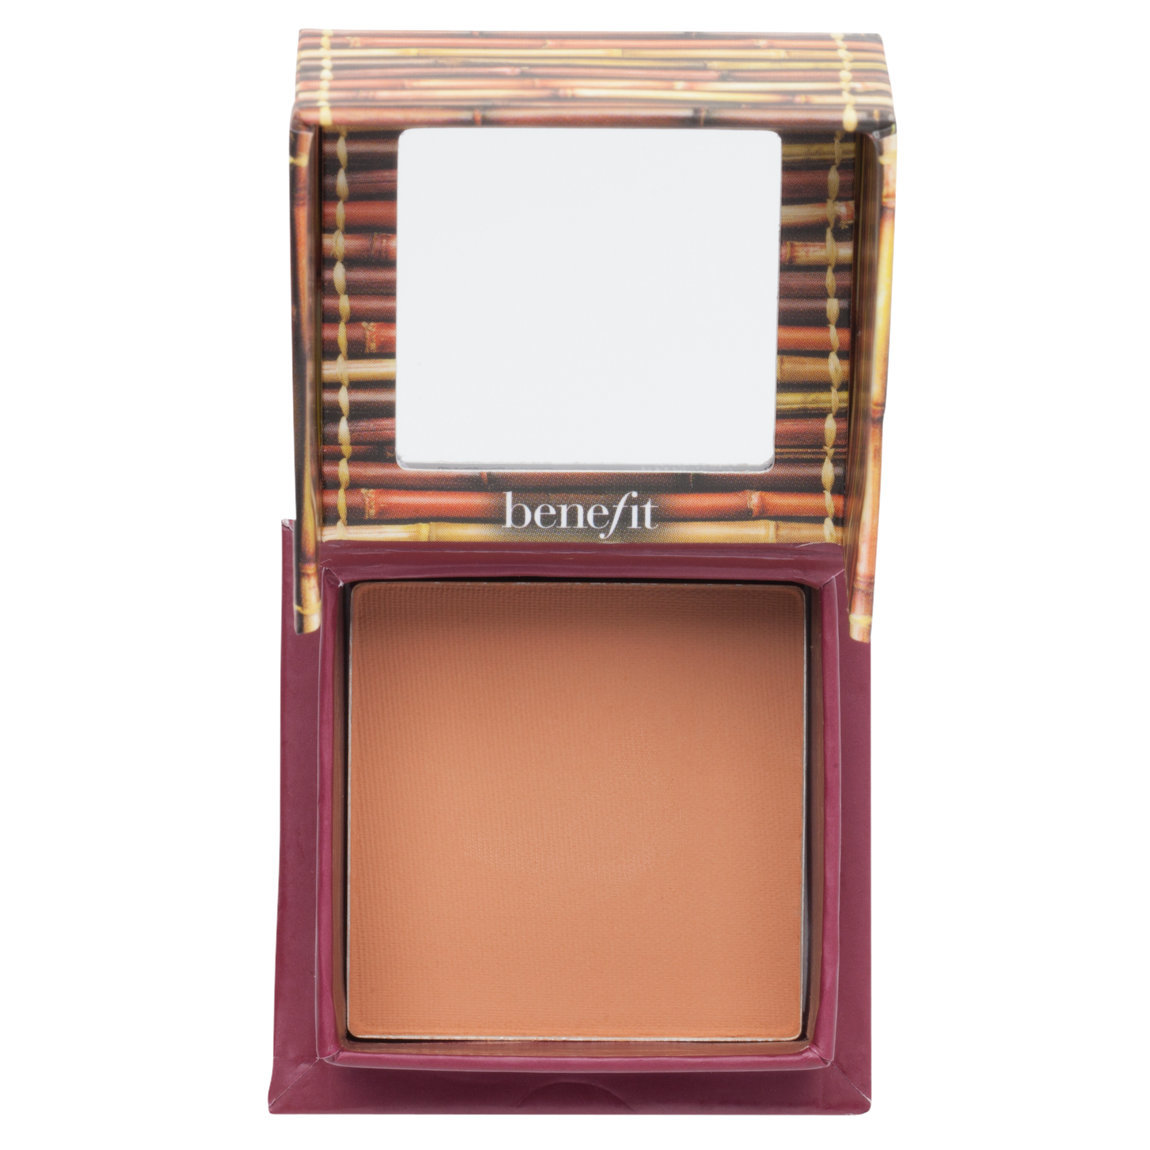 Benefit Cosmetics Hoola Matte Bronzer Mini product swatch.